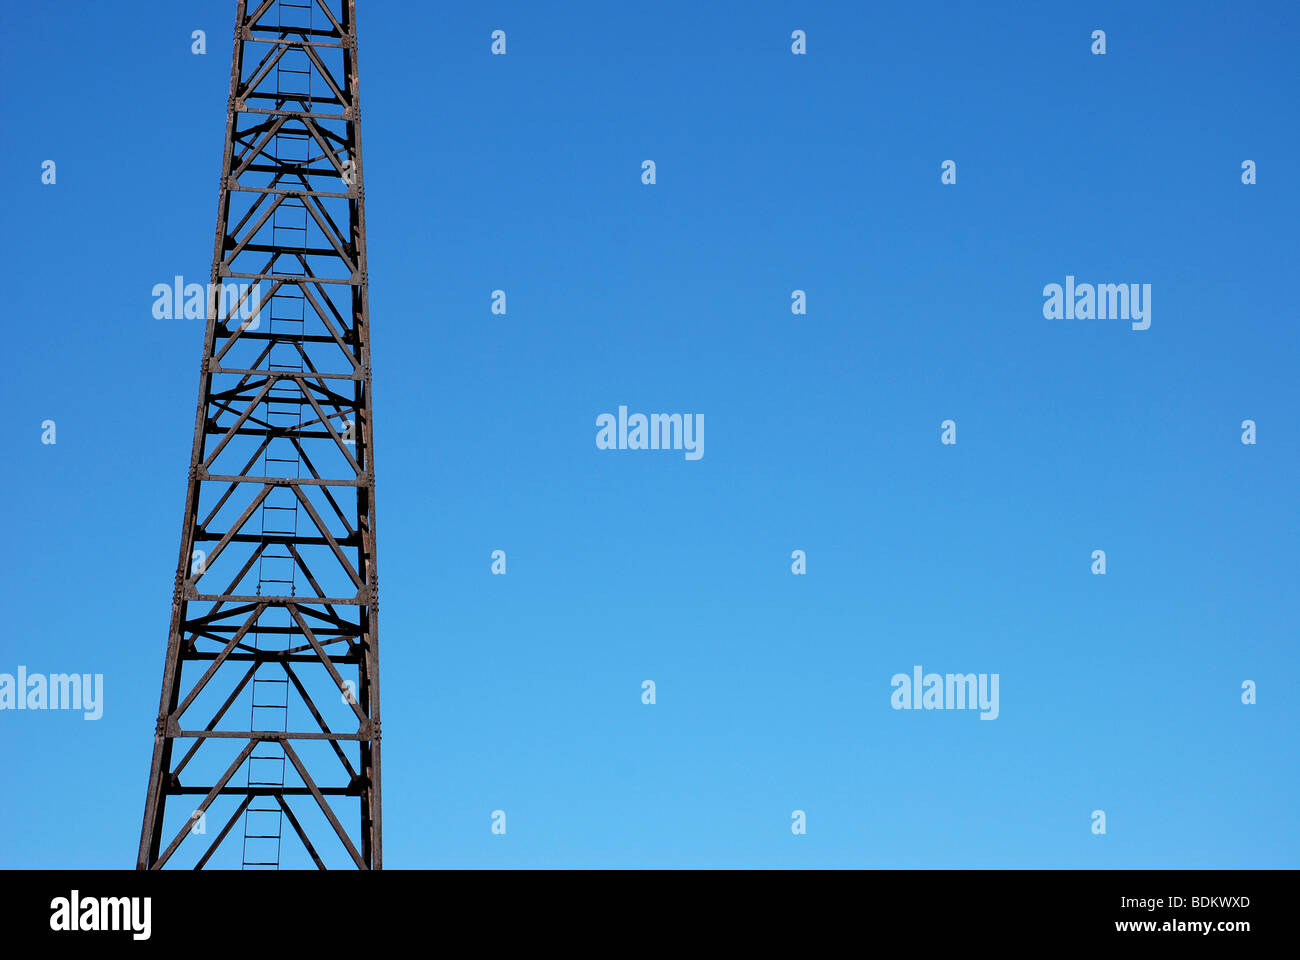 Metal, light tower on a pier at the shore of Lake Michigan, Chicago, IL, USA - Stock Image